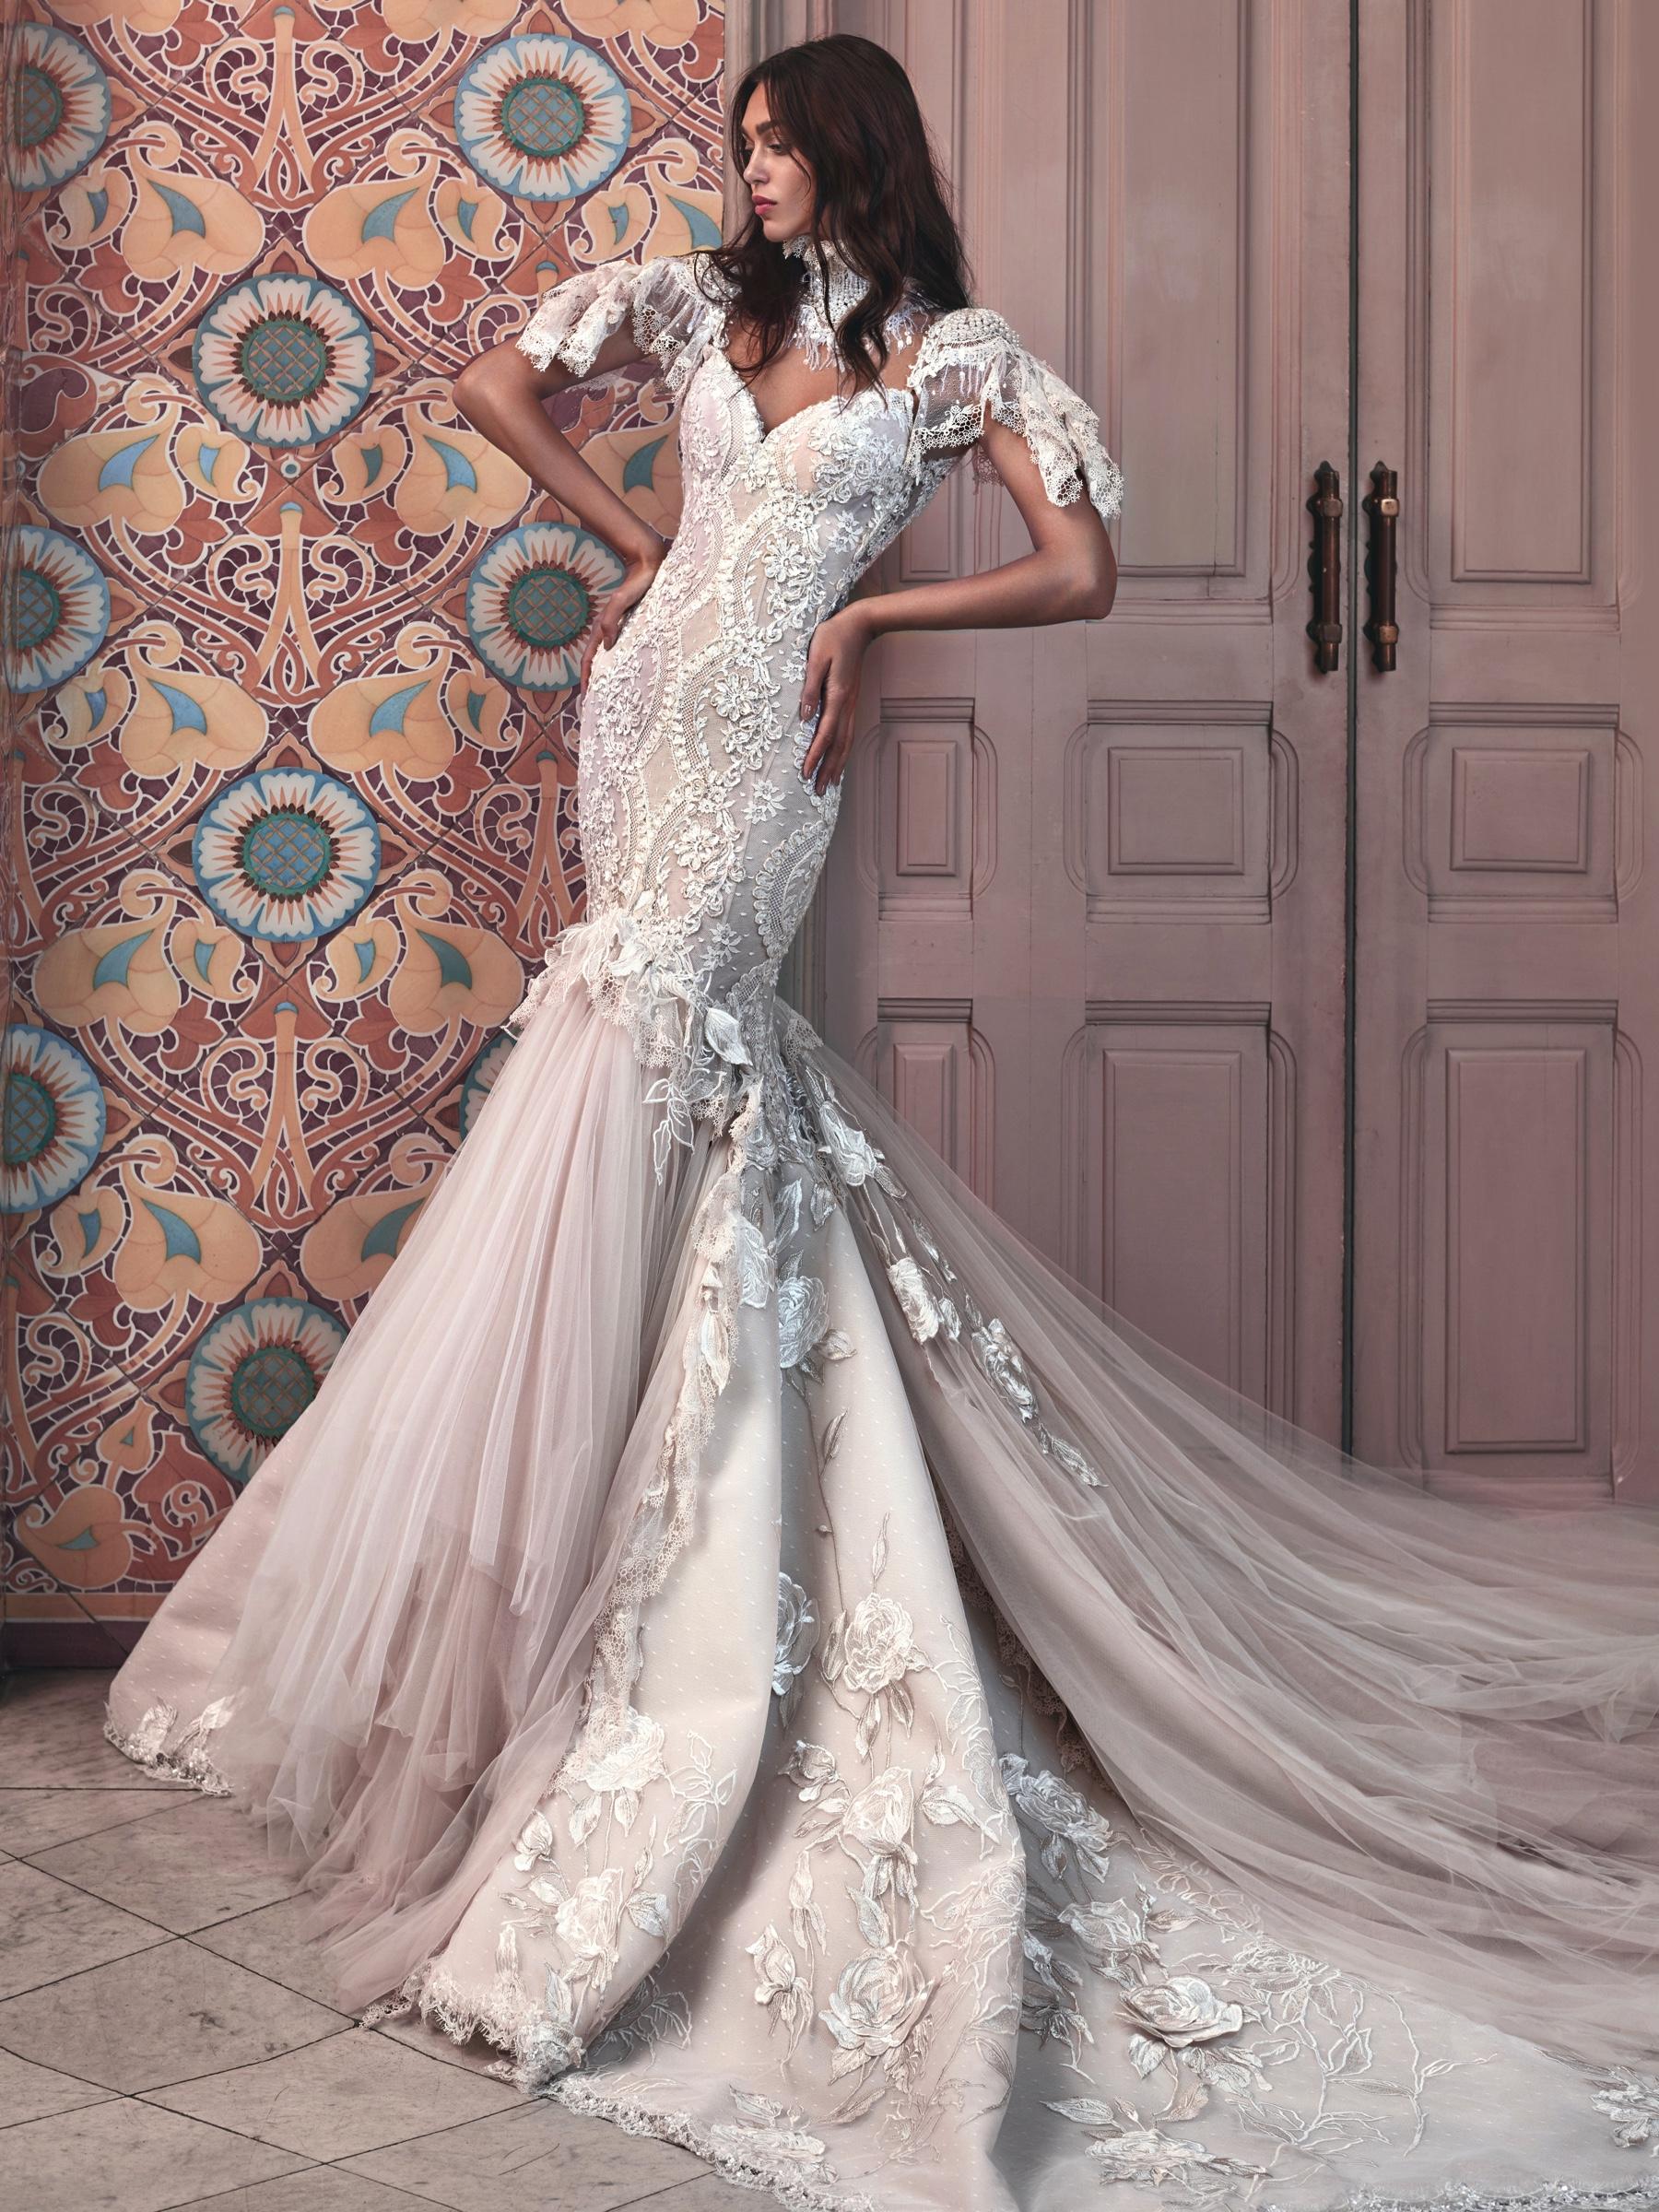 Ms. Genesis WEDDING GOWN GALIA LAHAV 2018